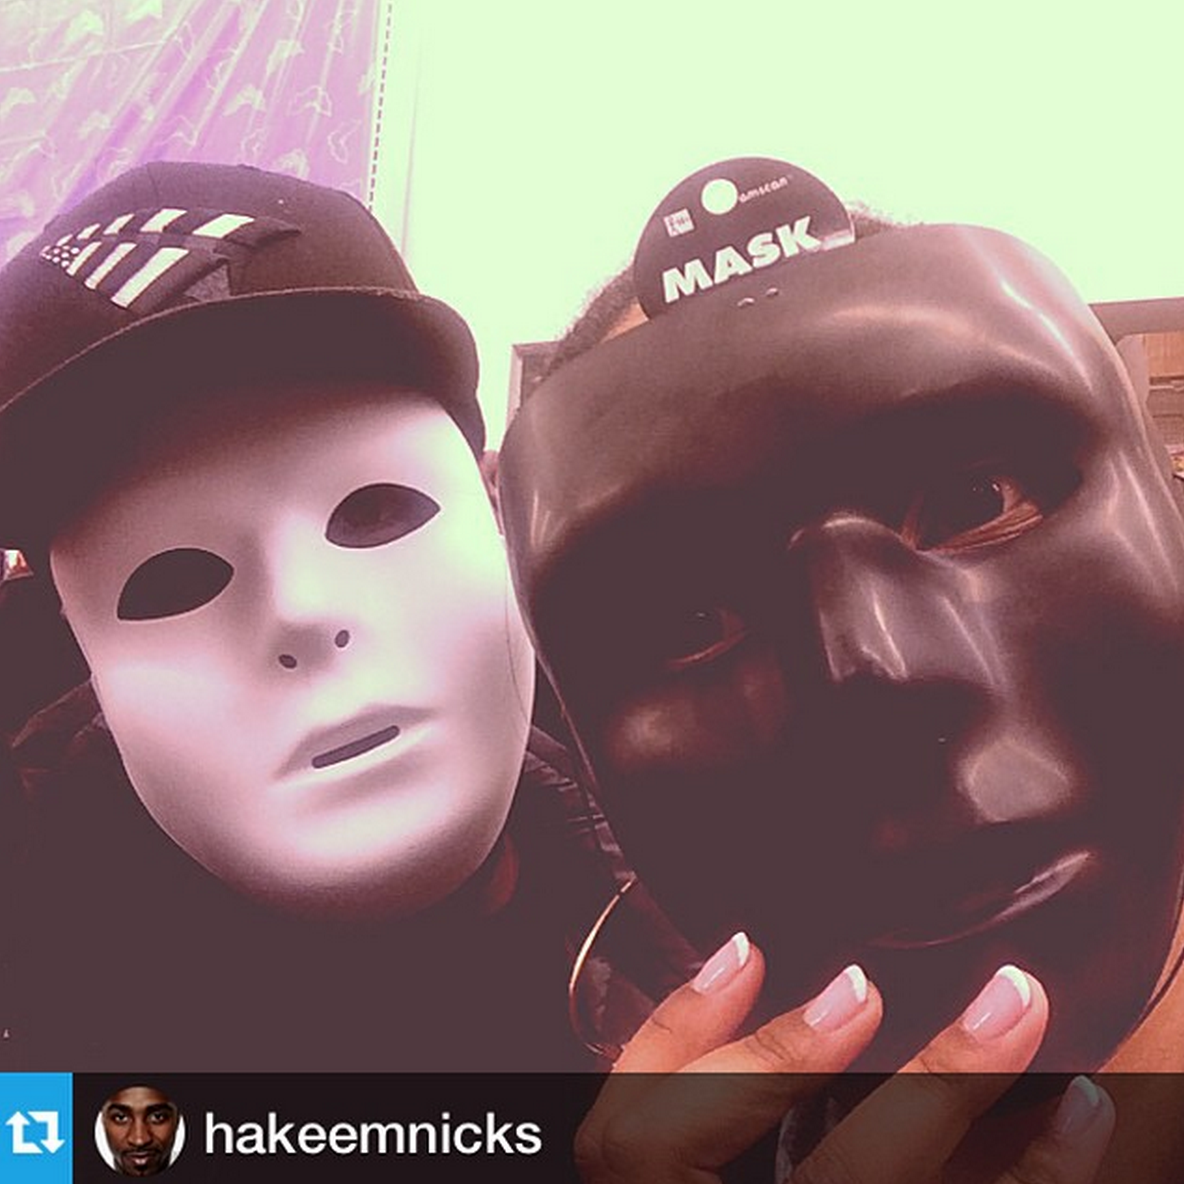 #Repost from @hakeemnicks with @repostapp --- Me and my lady... We're not ourselves when we're hungry..